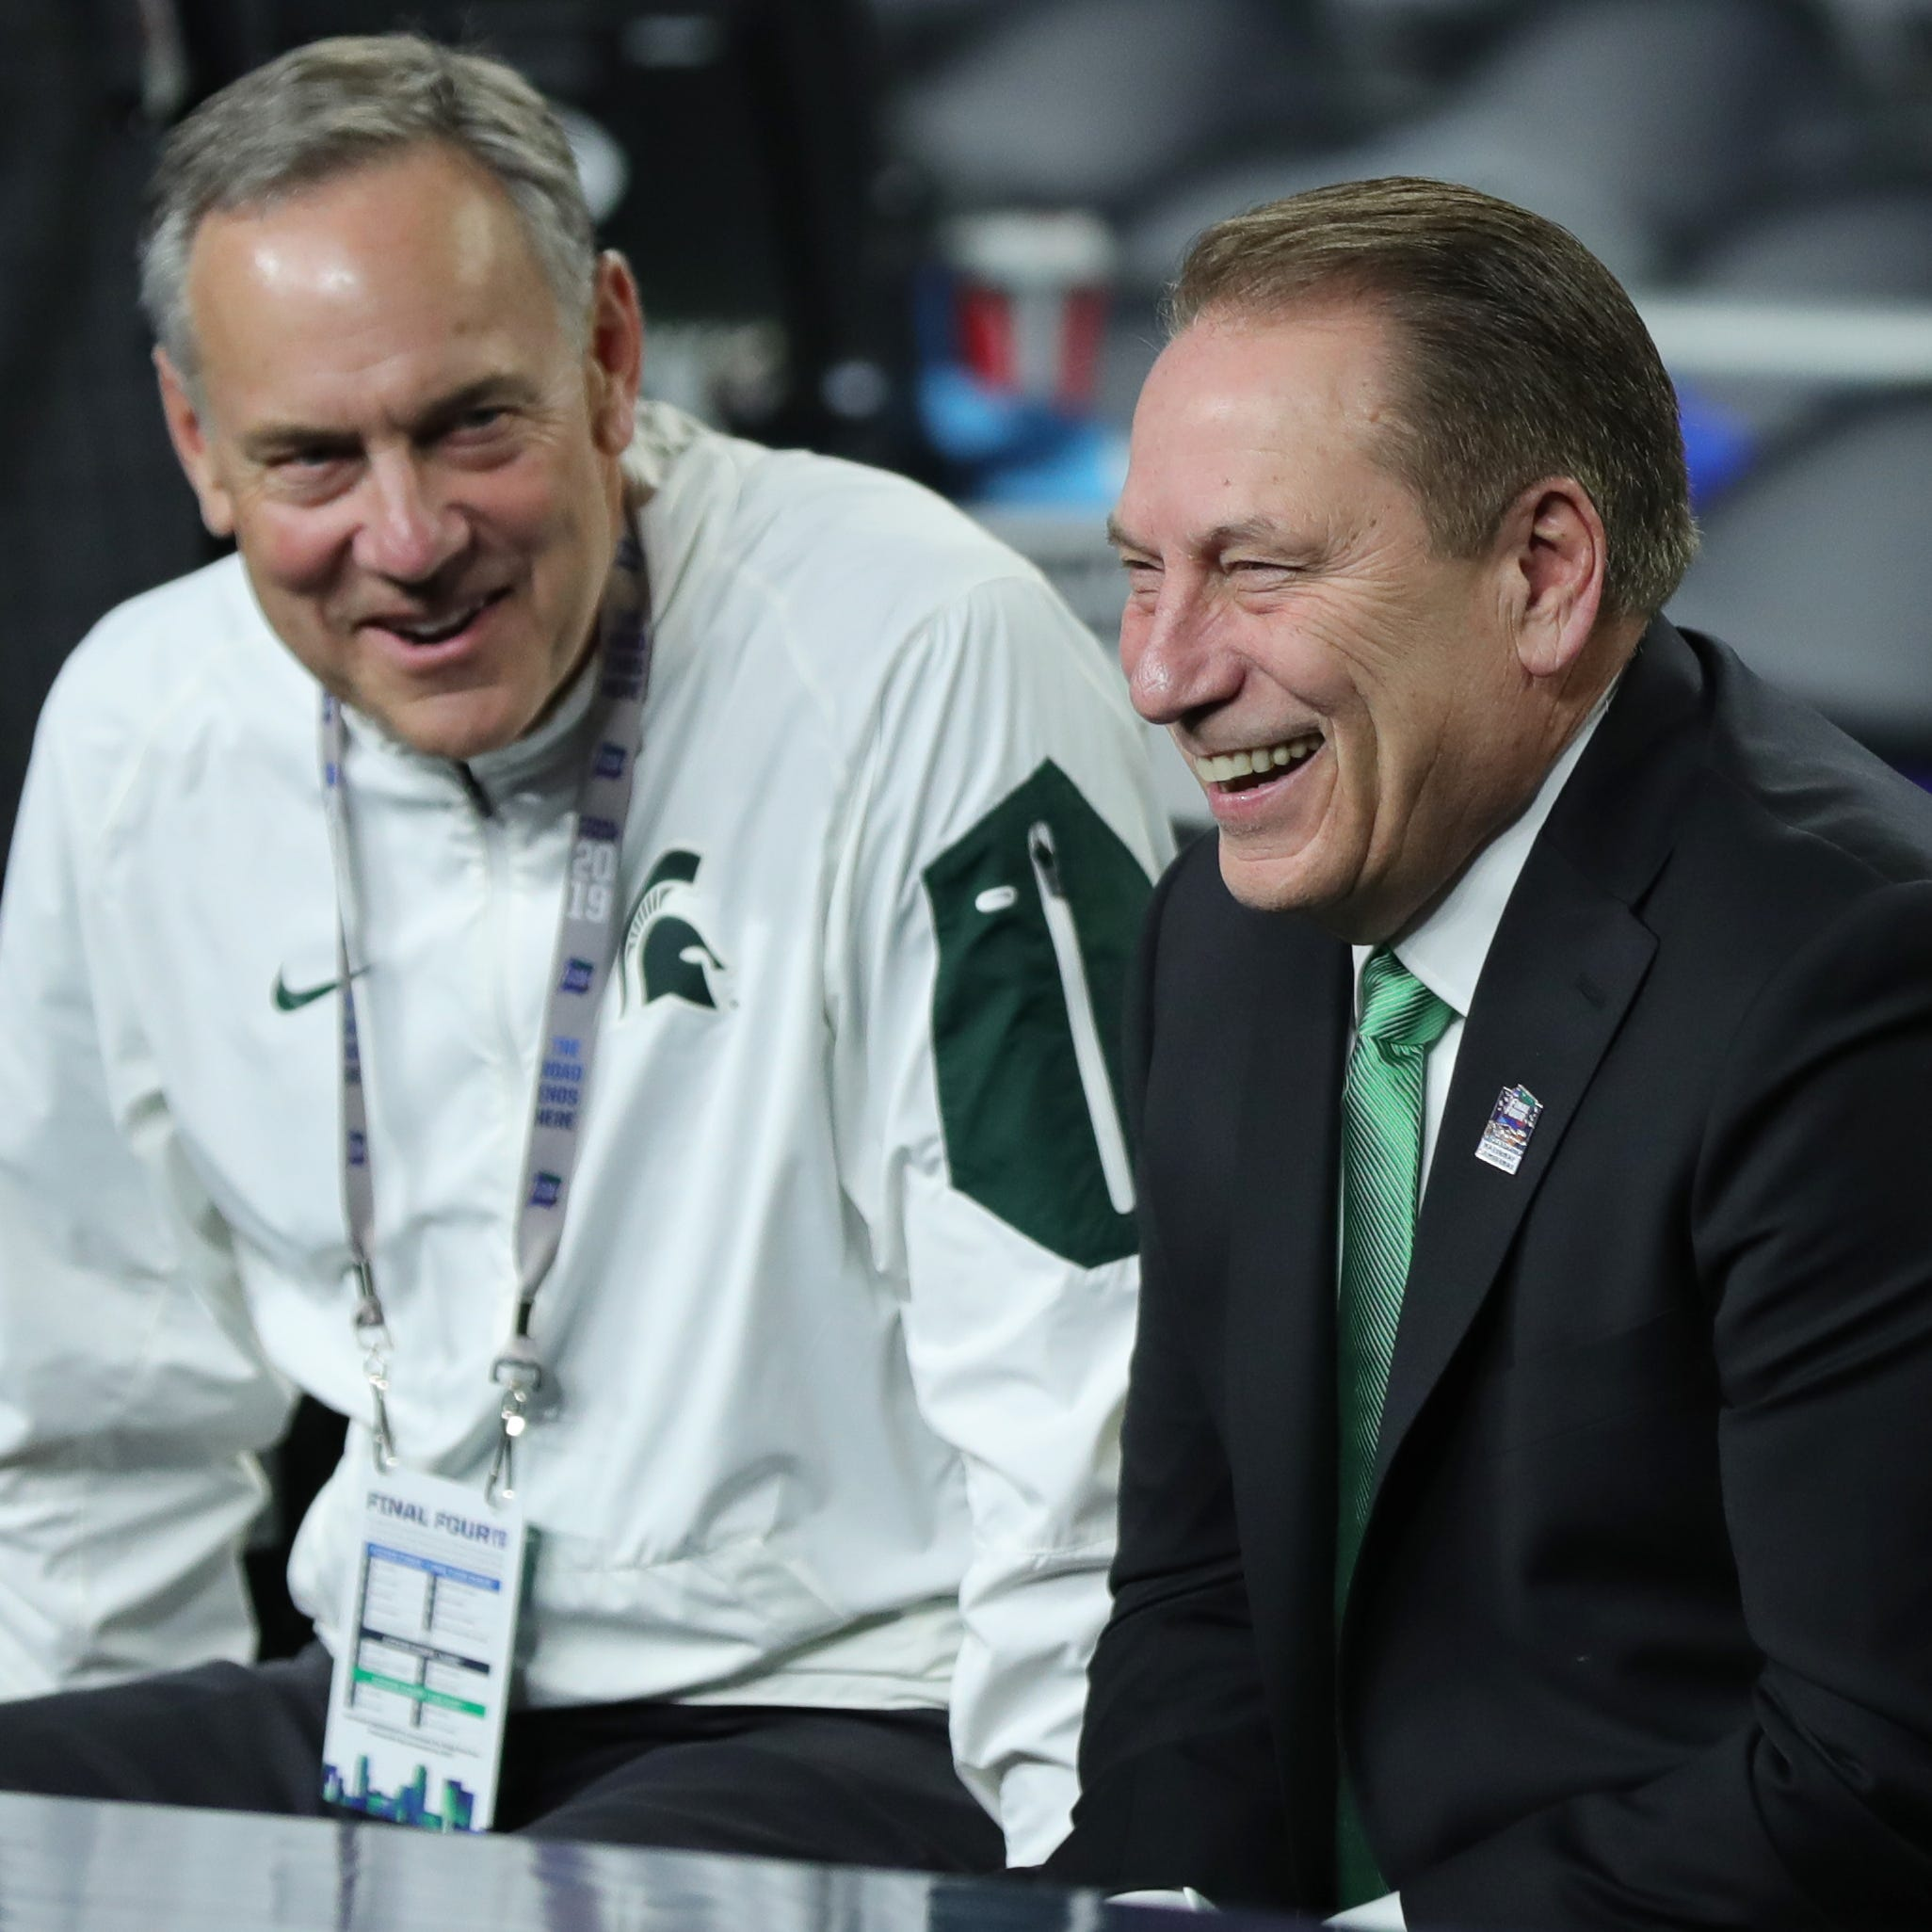 Michigan State football team takes Final Four bus trip, gets 'awesome' experience